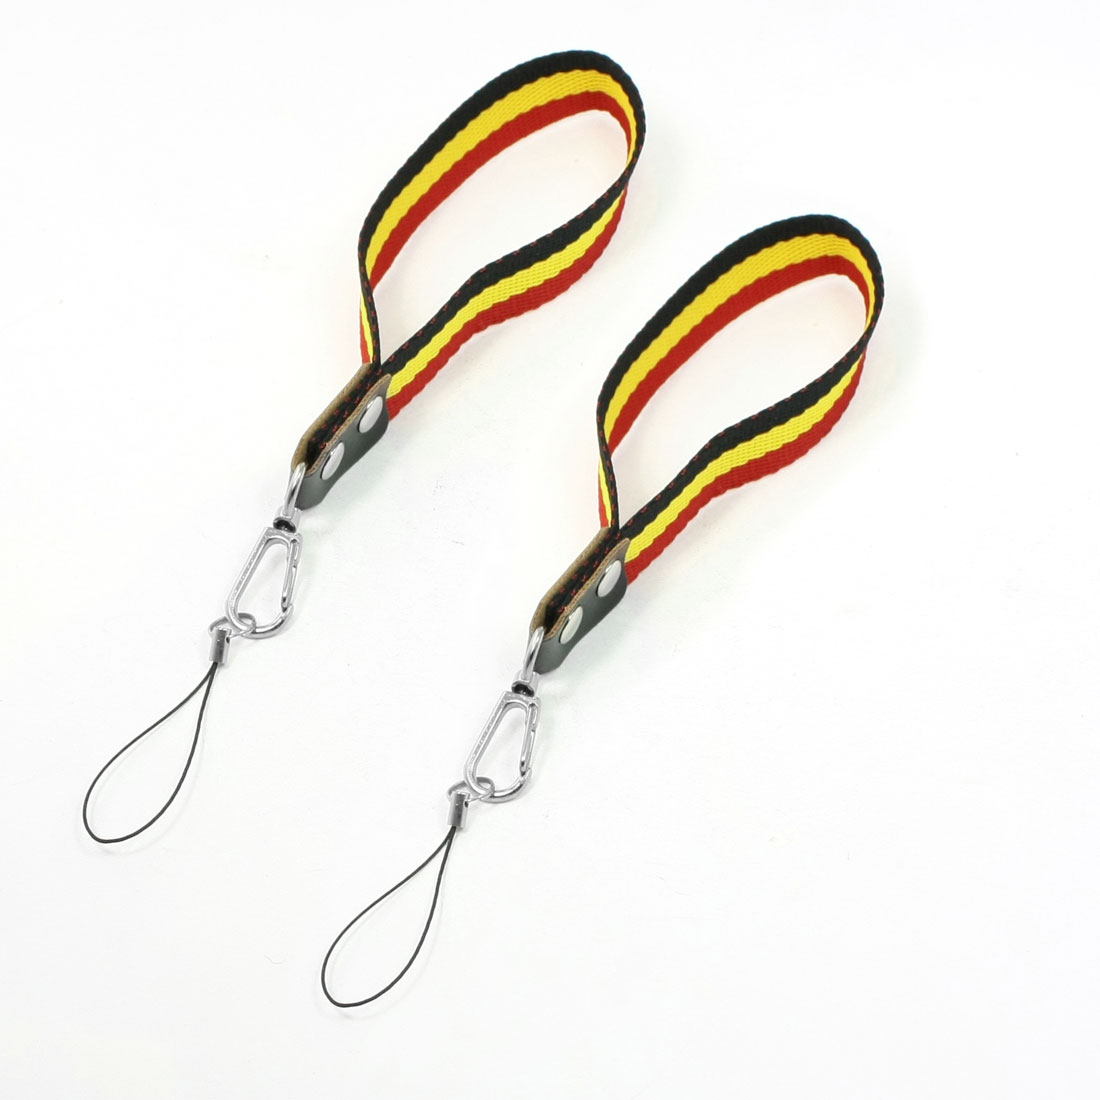 2 Pcs Black Yellow Red Stripe Pattern Hand Strap String for MP4 Cell Phone